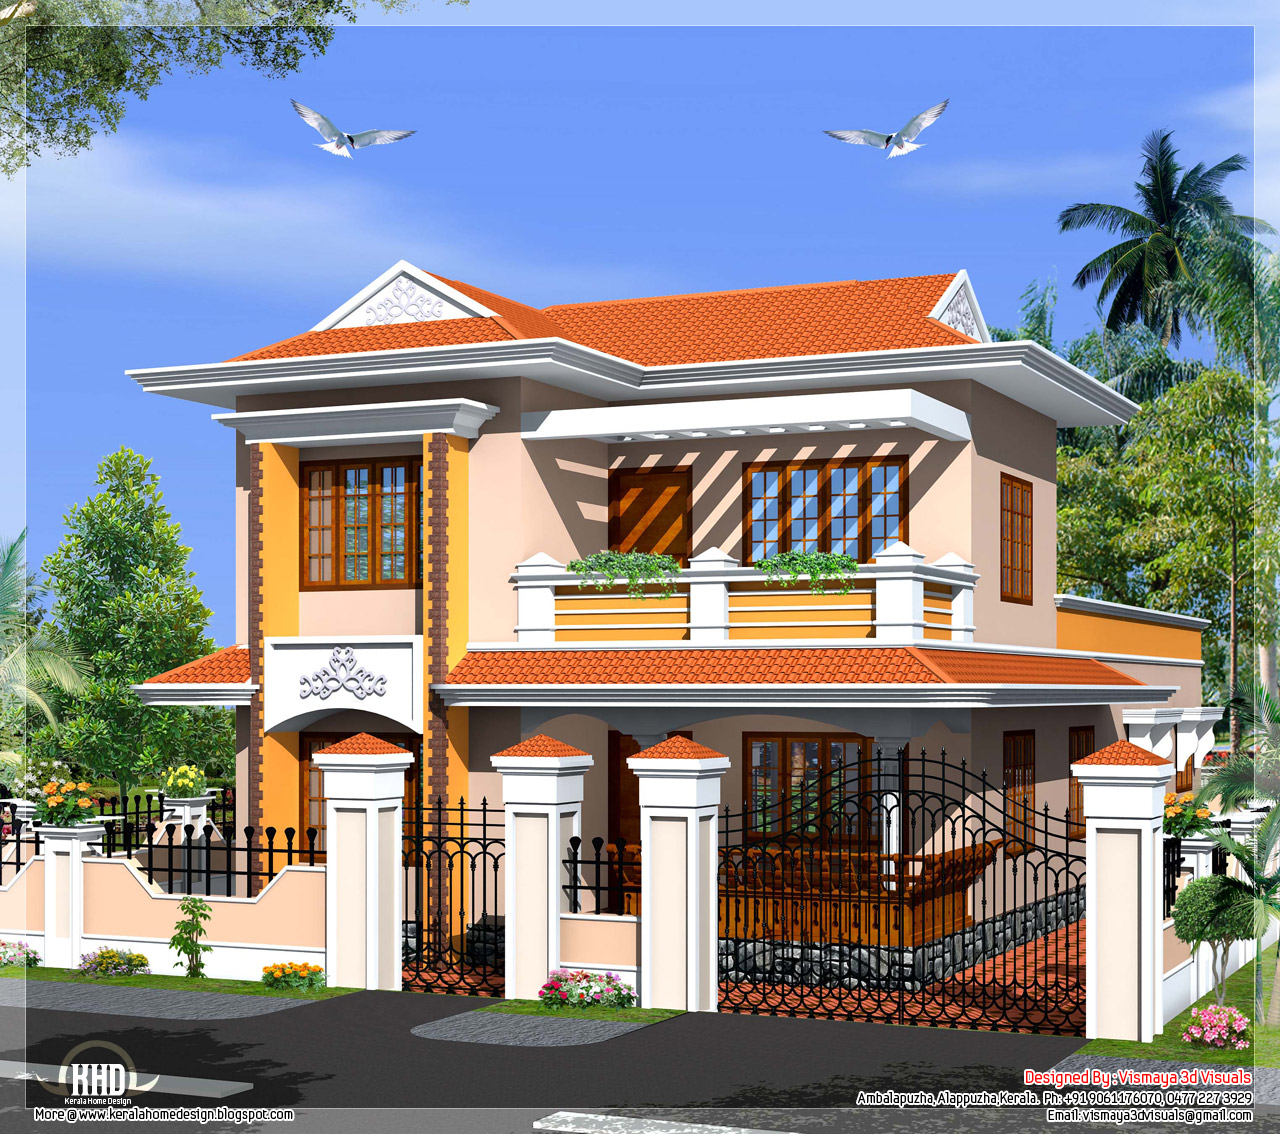 Kerala model villa in 2110 in square feet house design plans for Kerala style villa plans